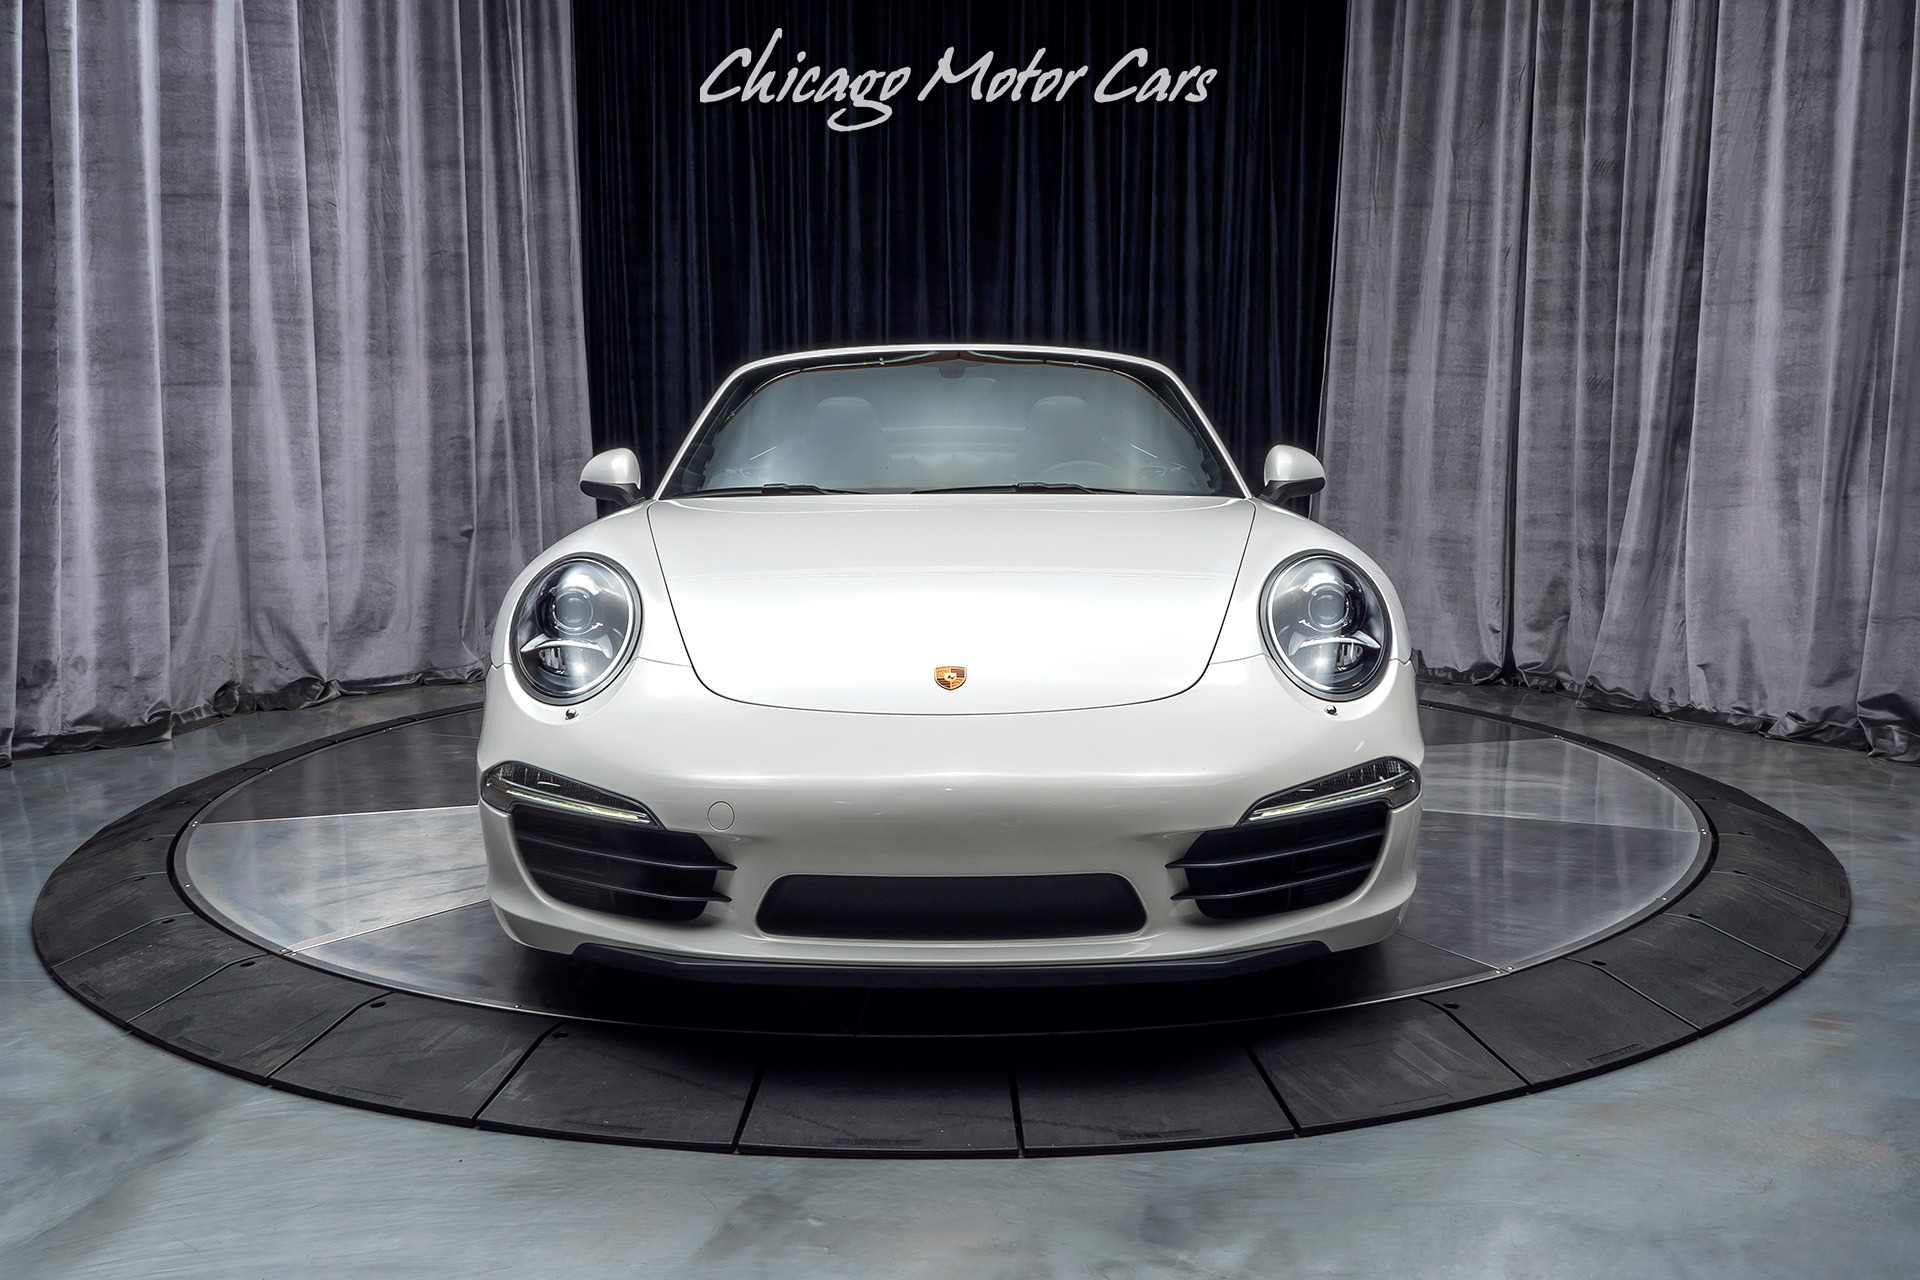 Used-2012-Porsche-911-Carrera-Convertible-Sport-Exhaust-Manual-7-Speed-Transmission